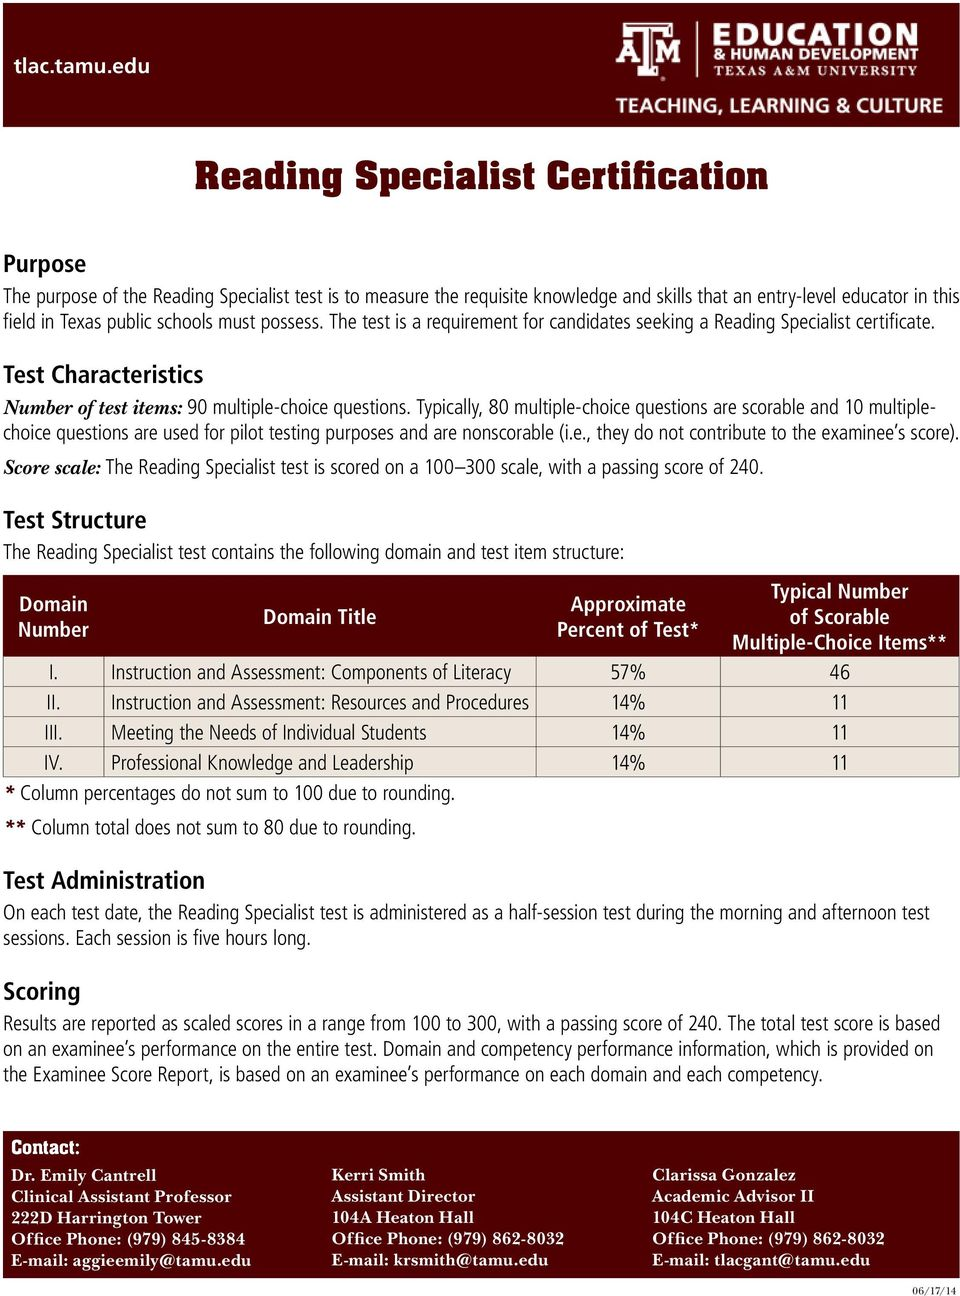 schools must possess. The test is a requirement for candidates seeking a Reading Specialist certificate. Test Characteristics Number of test items: 90 multiple-choice questions.